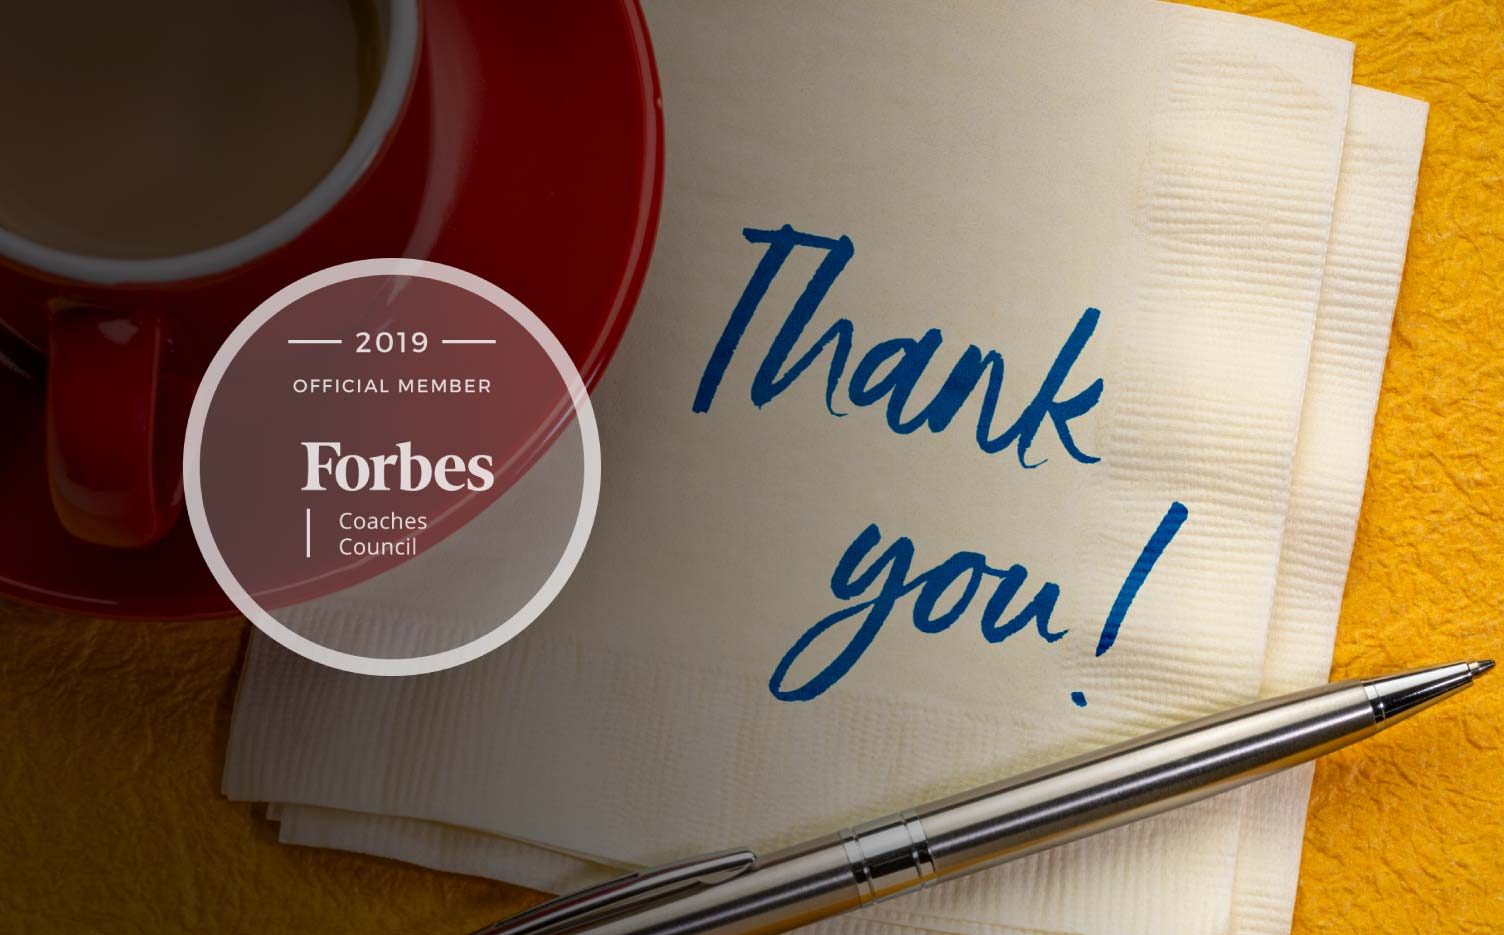 Jon Dwoskin Forbes Coaches Council Article: Pause and Say Thank You